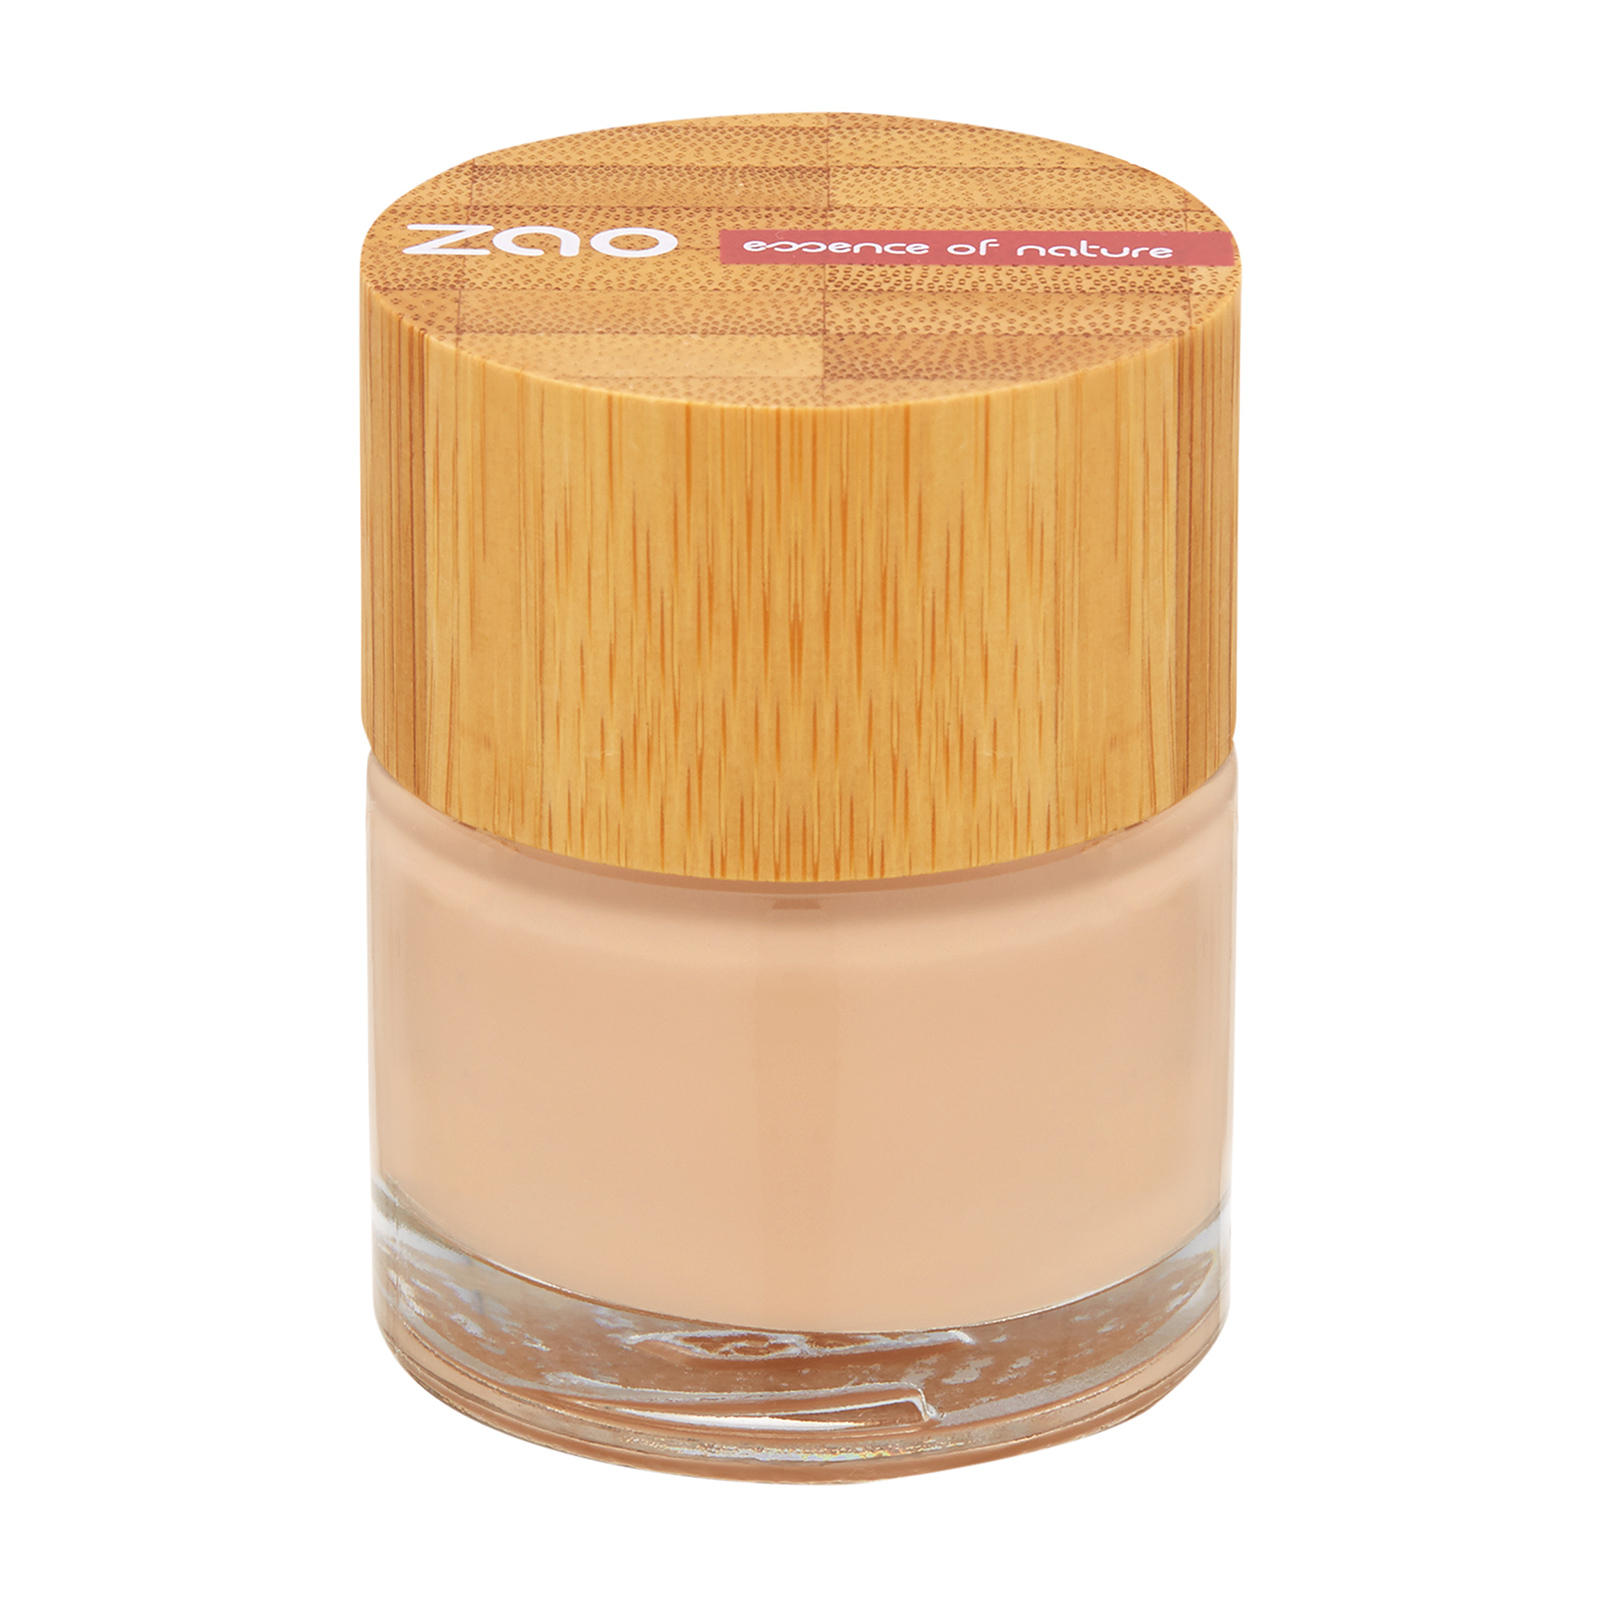 ZAO  Silk Foundation 701 Ivory, 1oz, 30ml from Cosme-De.com